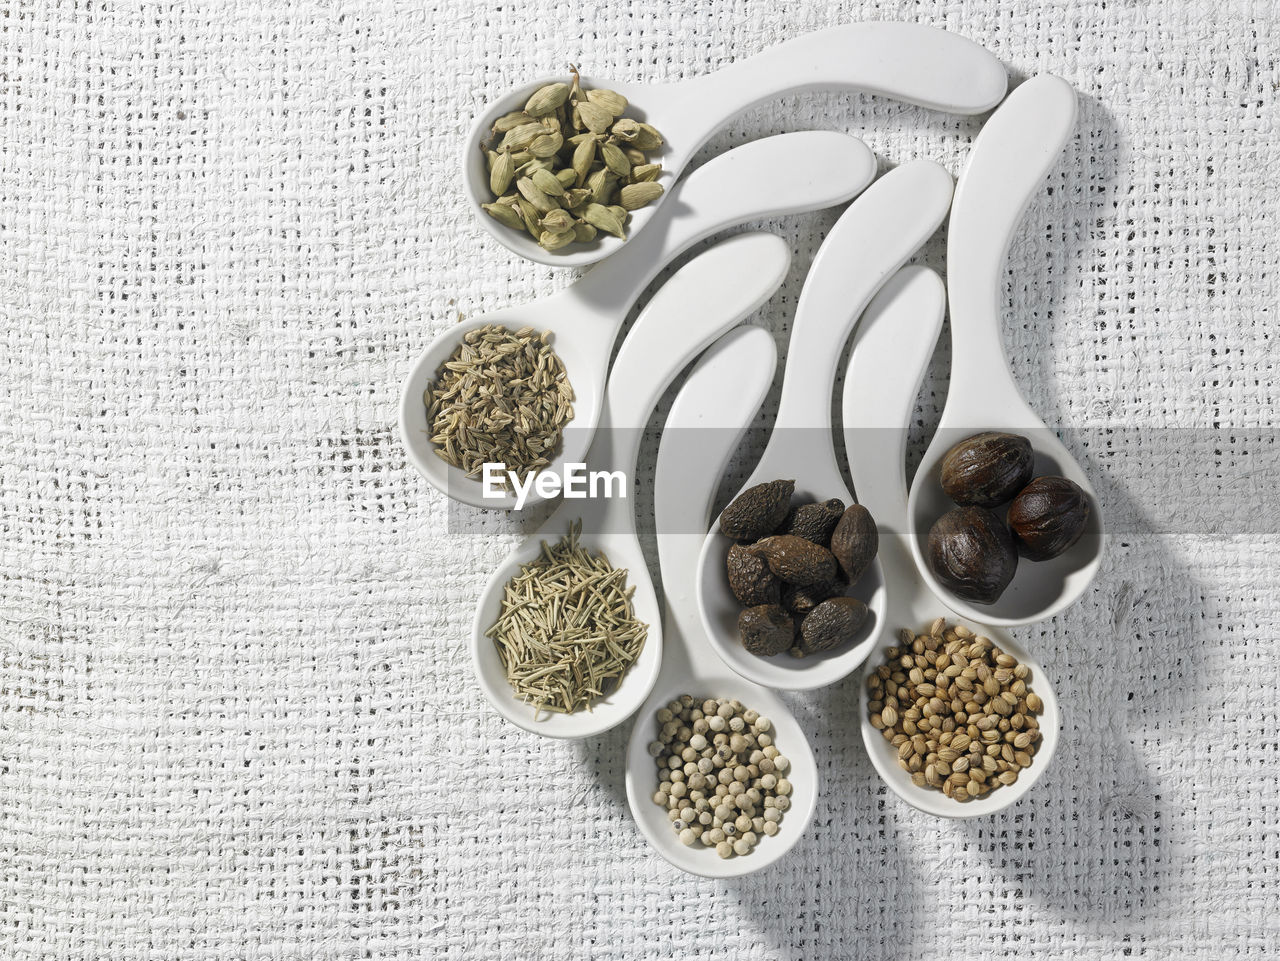 High angle view of ingredients in spoon on table